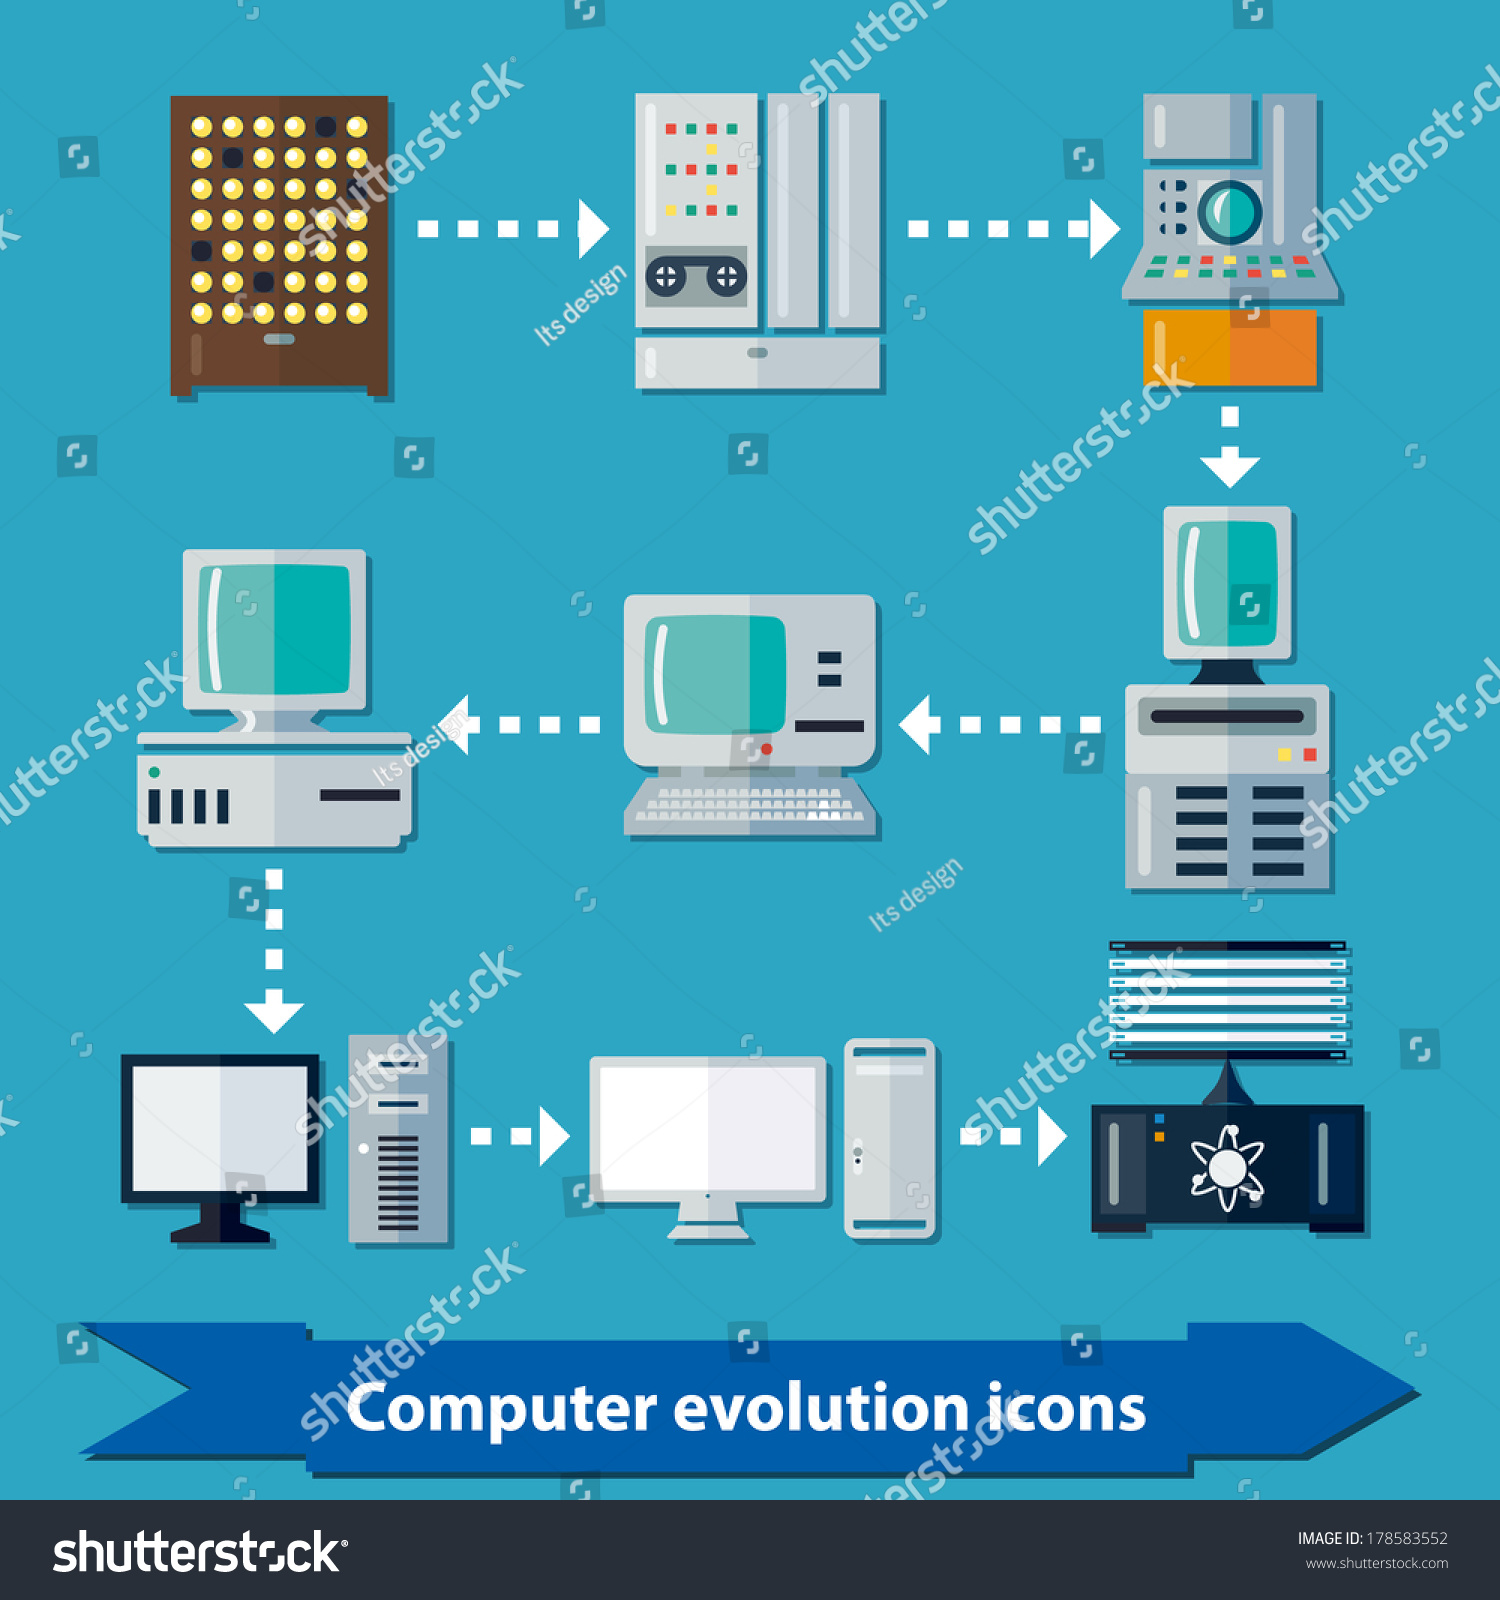 Icons Computer Evolution Flat Colors Computer Stock Vector ...